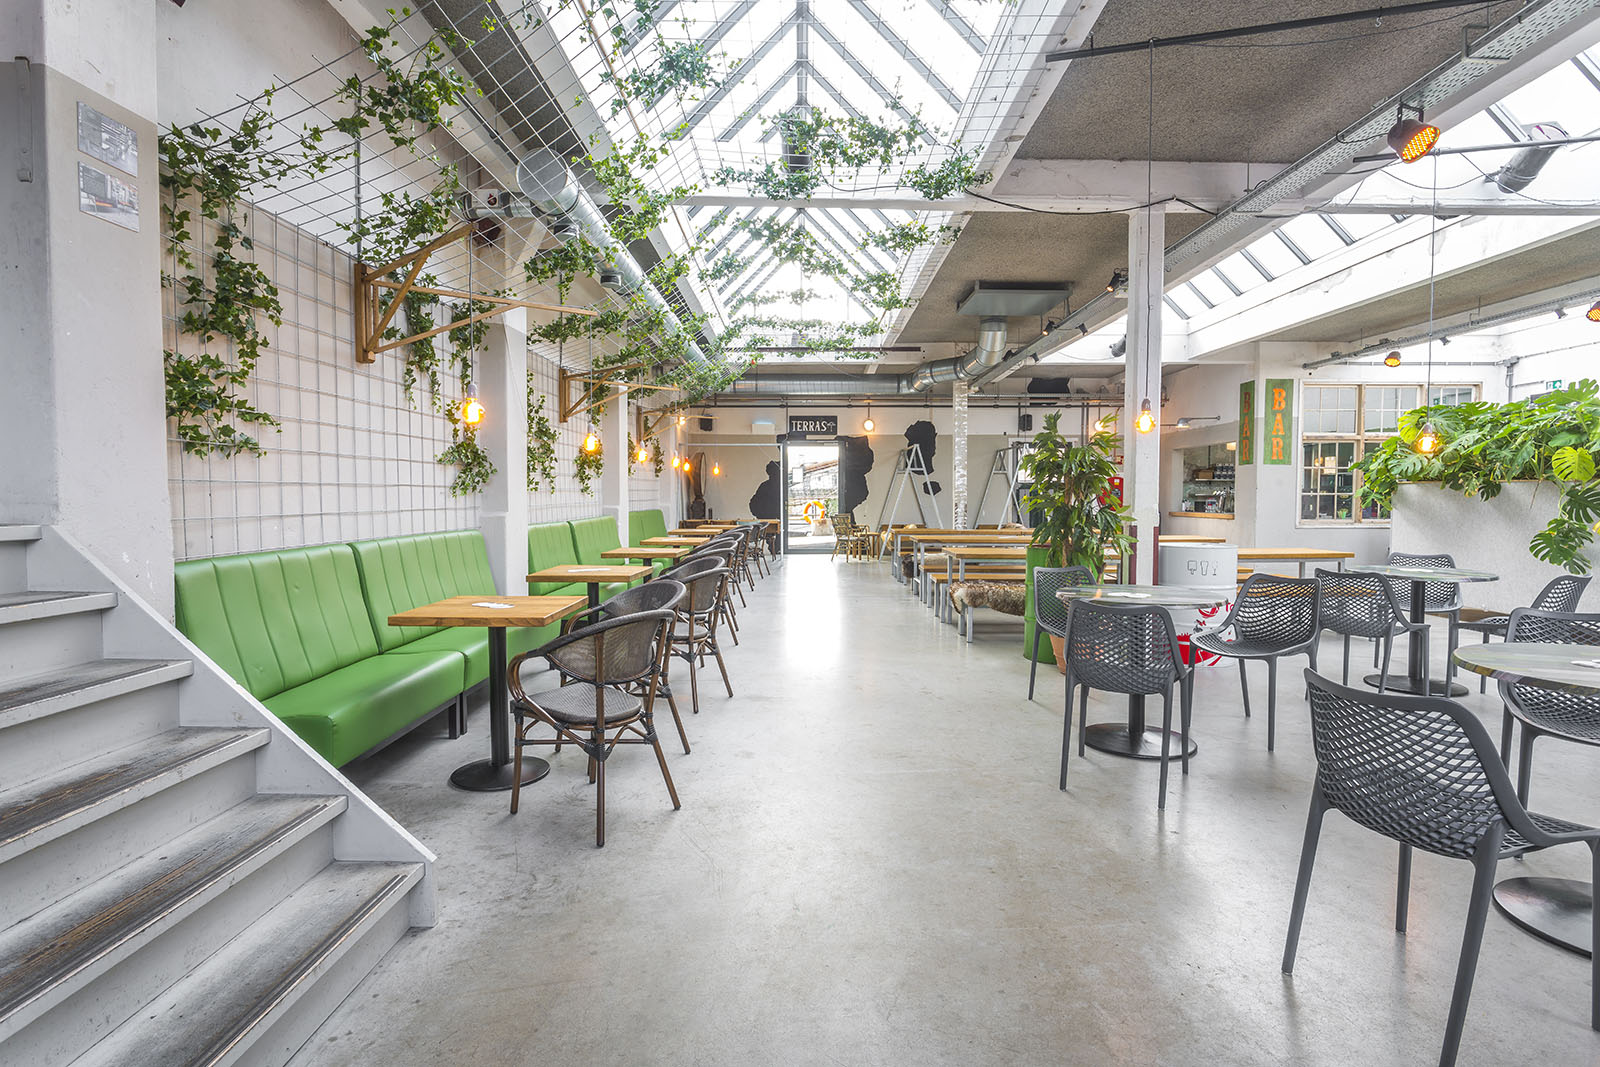 fooddock deventer interieur